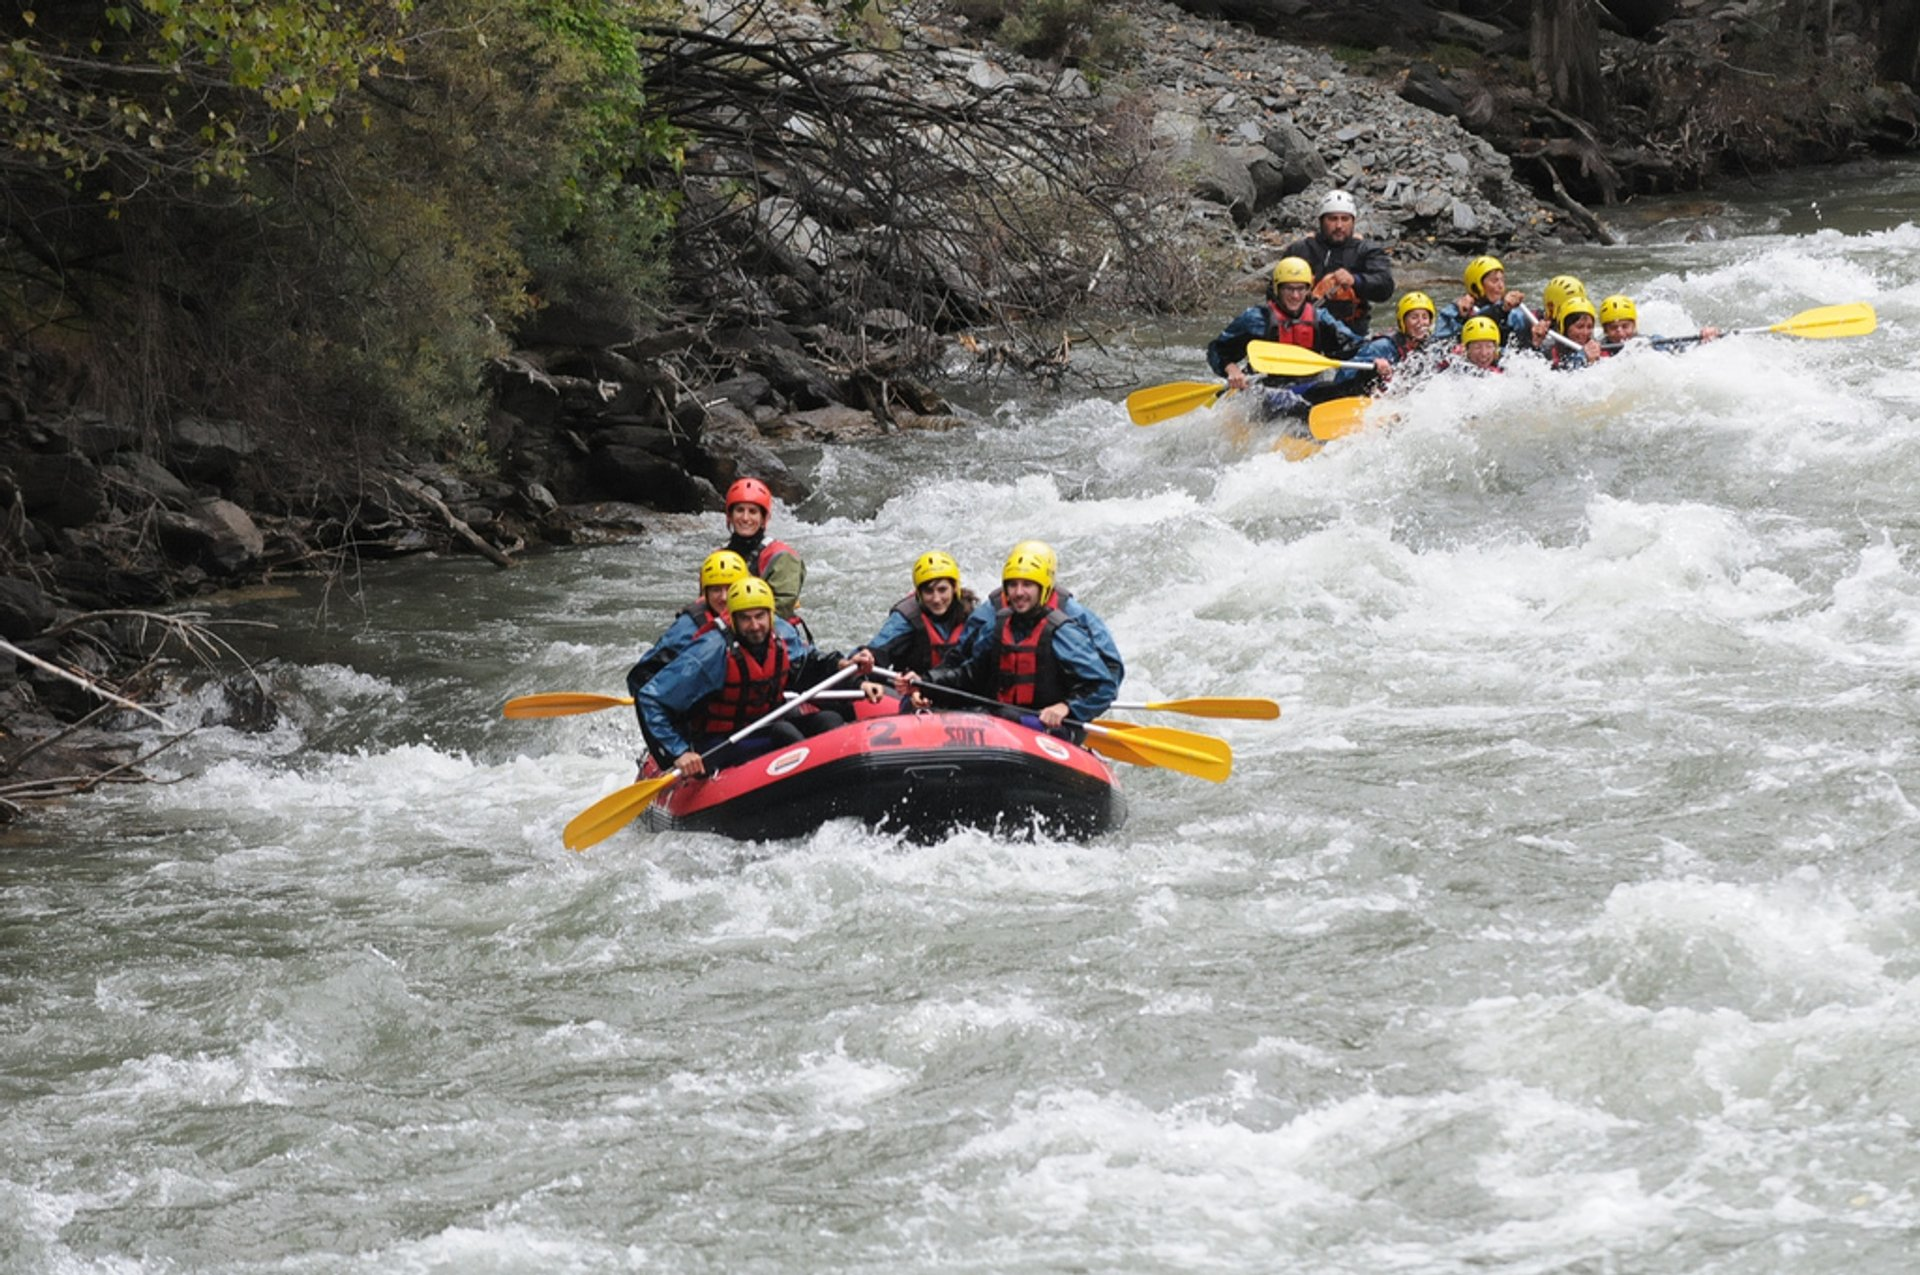 Best time for White Water Rafting in Spain 2020